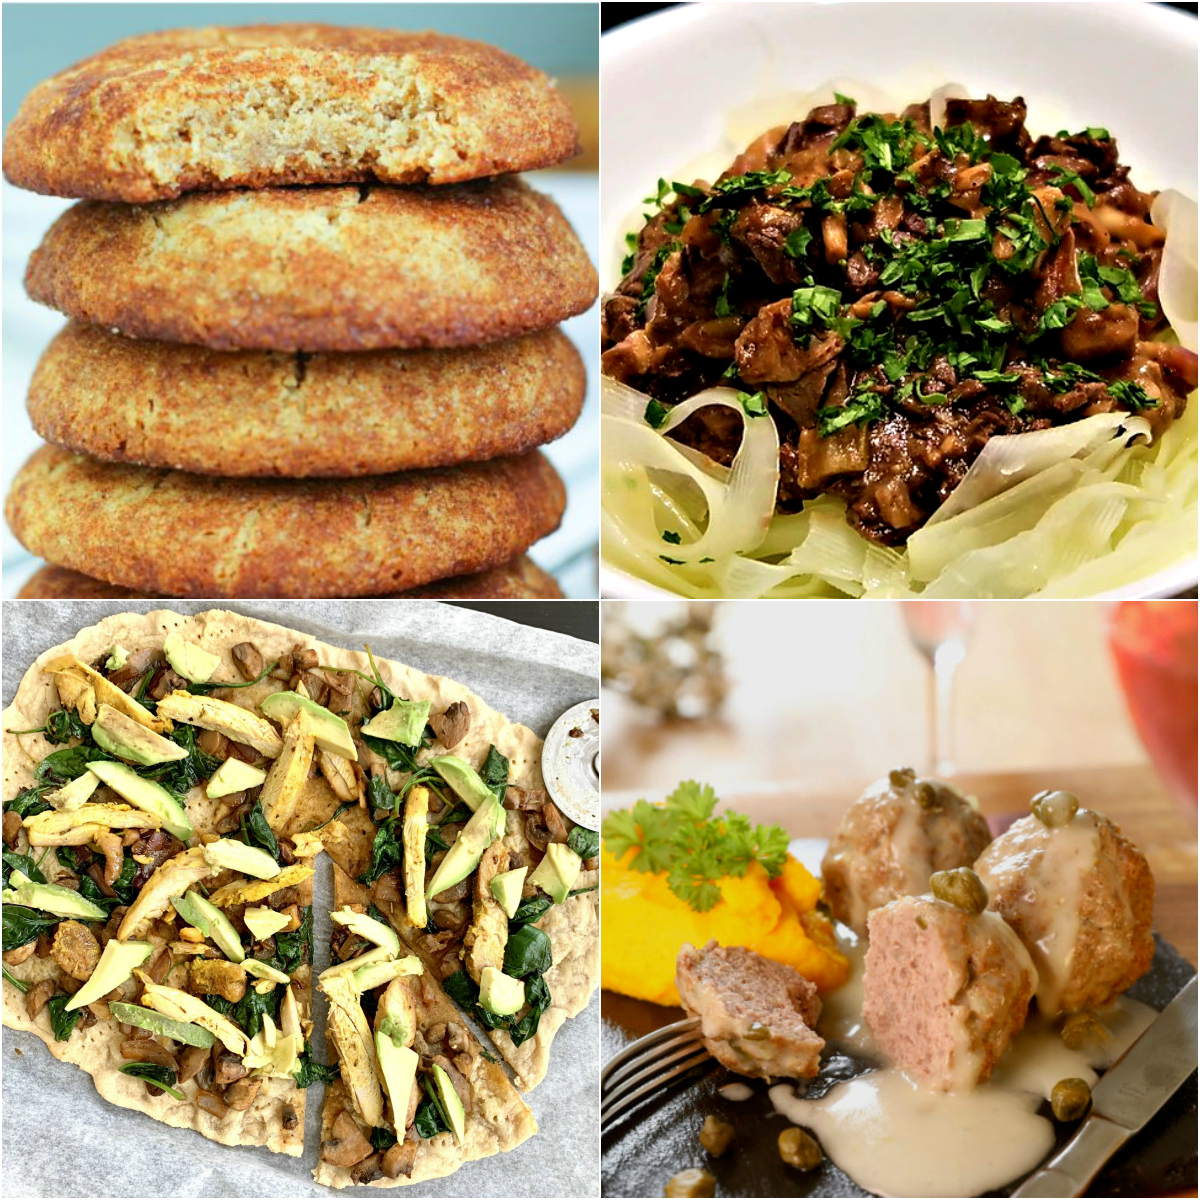 Paleo AIP Recipe Roundtable #312: The featured recipes from last week are Snickerdoodles, Pizza Crust, Beef Stroganoff, and Konigsberg Meatballs with Caper Sauce